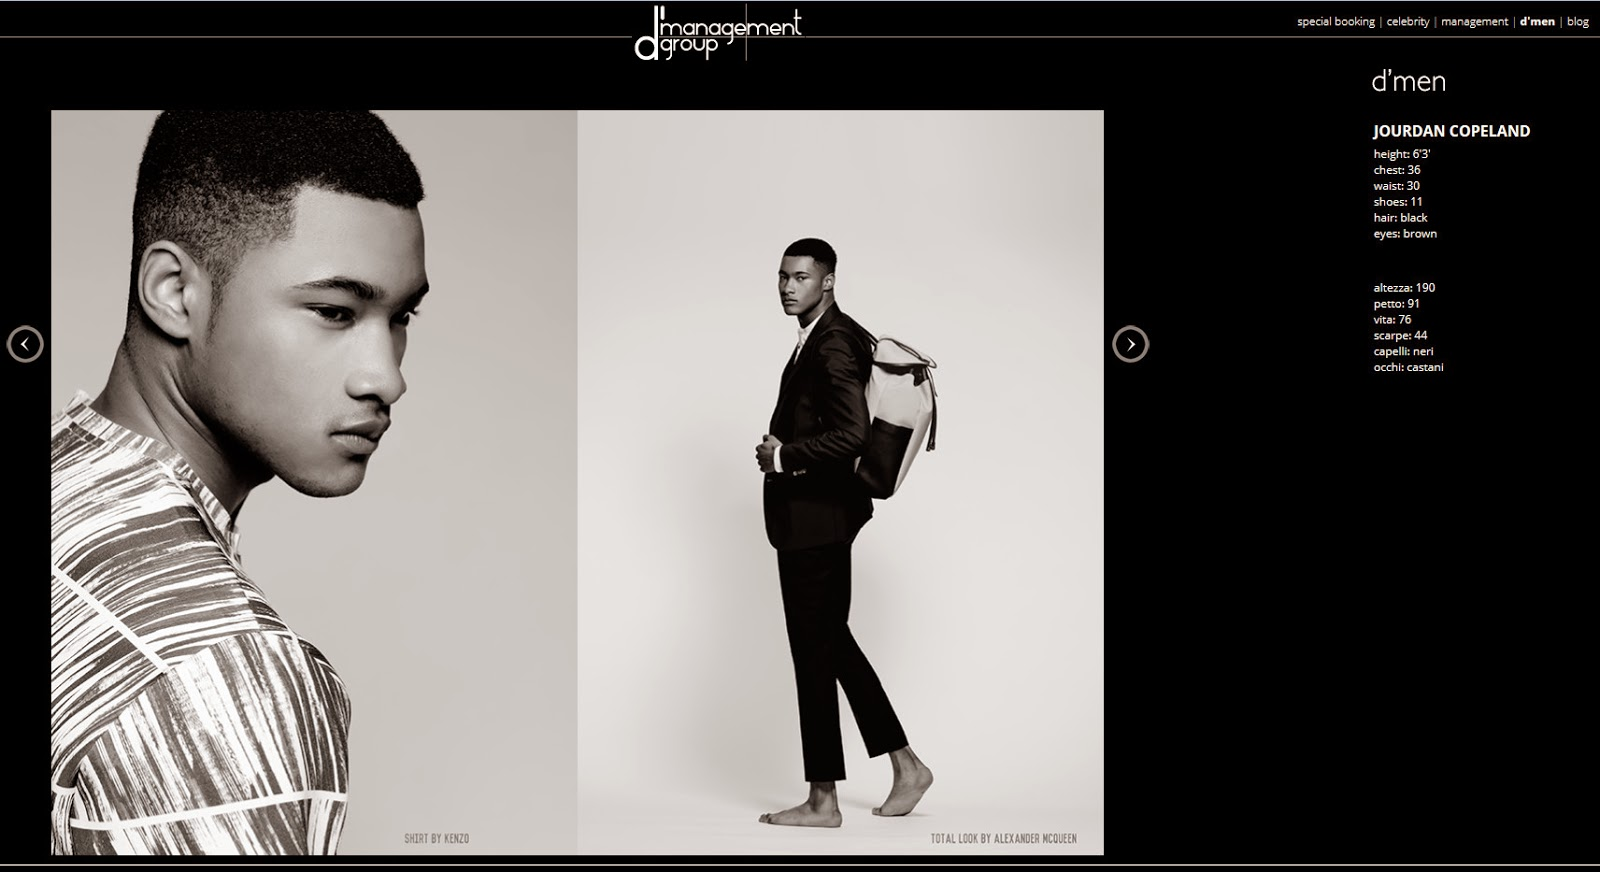 Jourdan Copeland @ dmanagement Group Milan